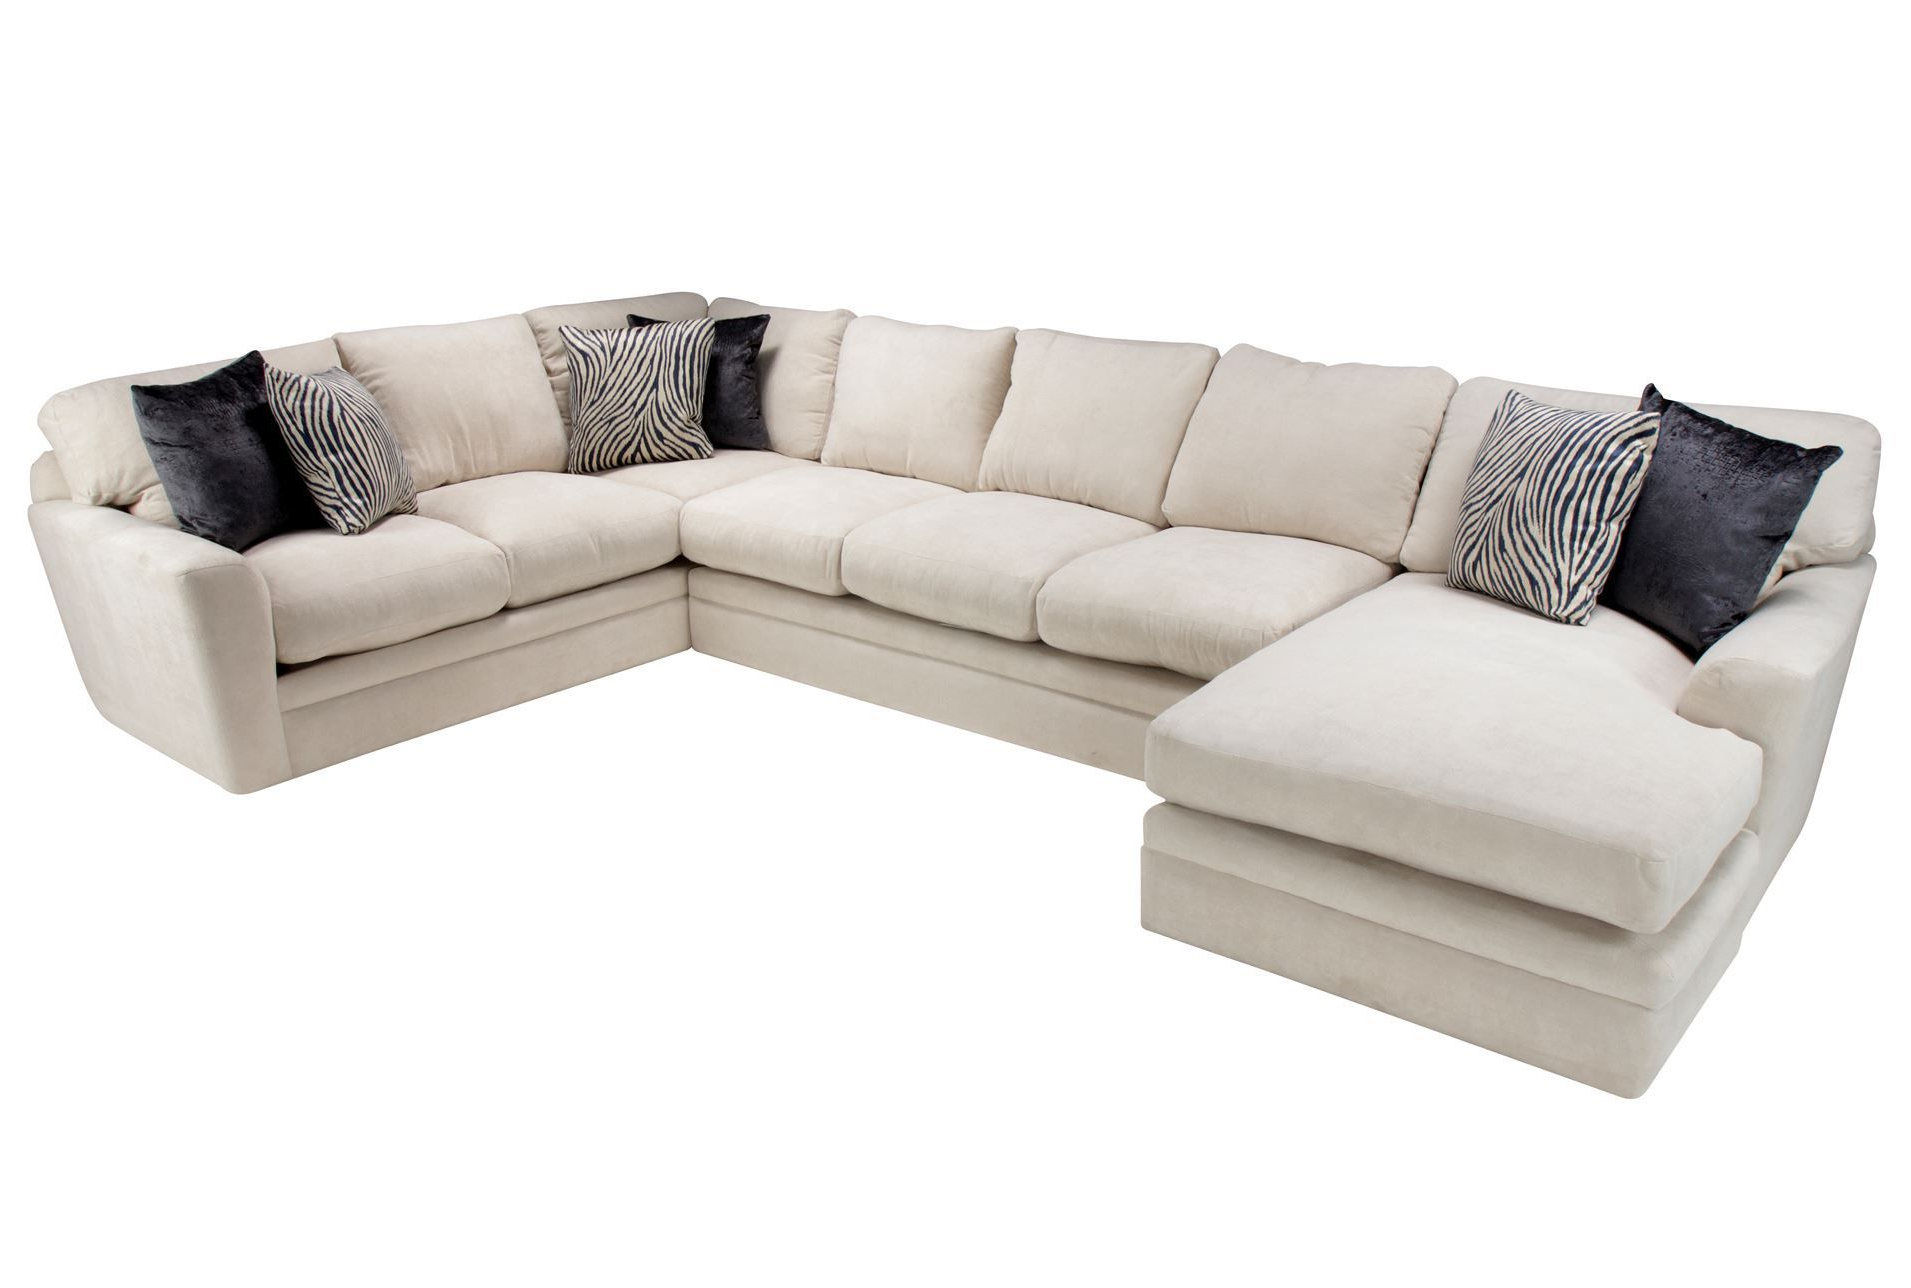 Home Throughout Most Up To Date Glamour Ii 3 Piece Sectionals (View 5 of 20)